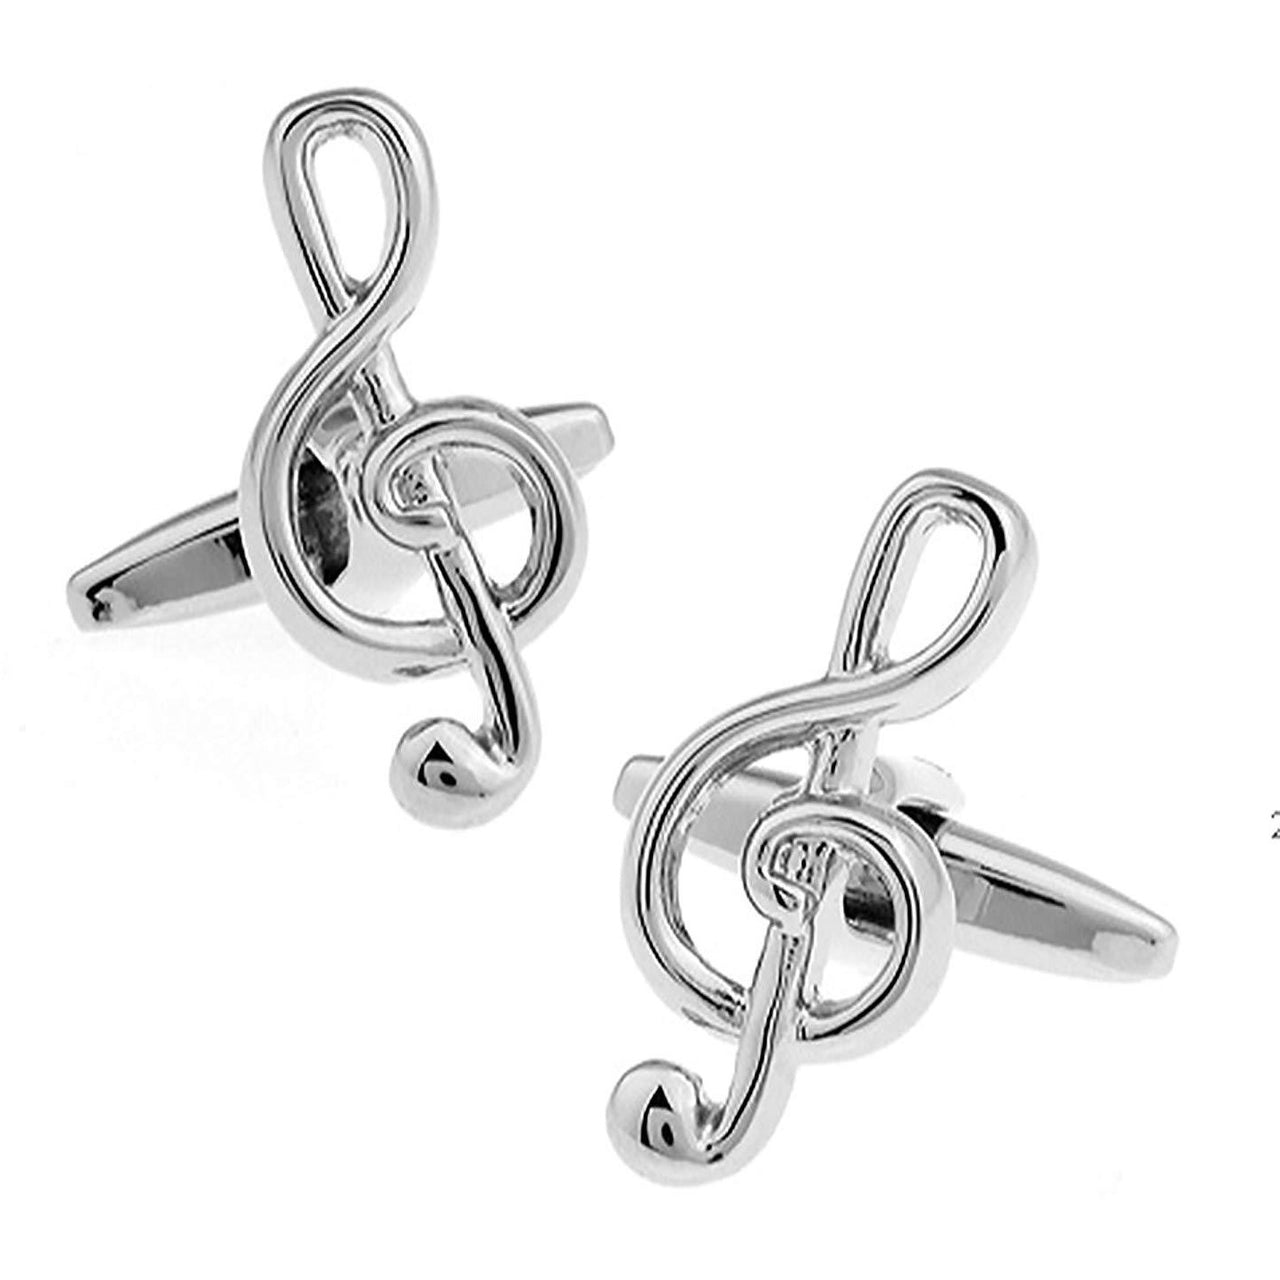 Silver Treble Clef Musical Note Cufflinks